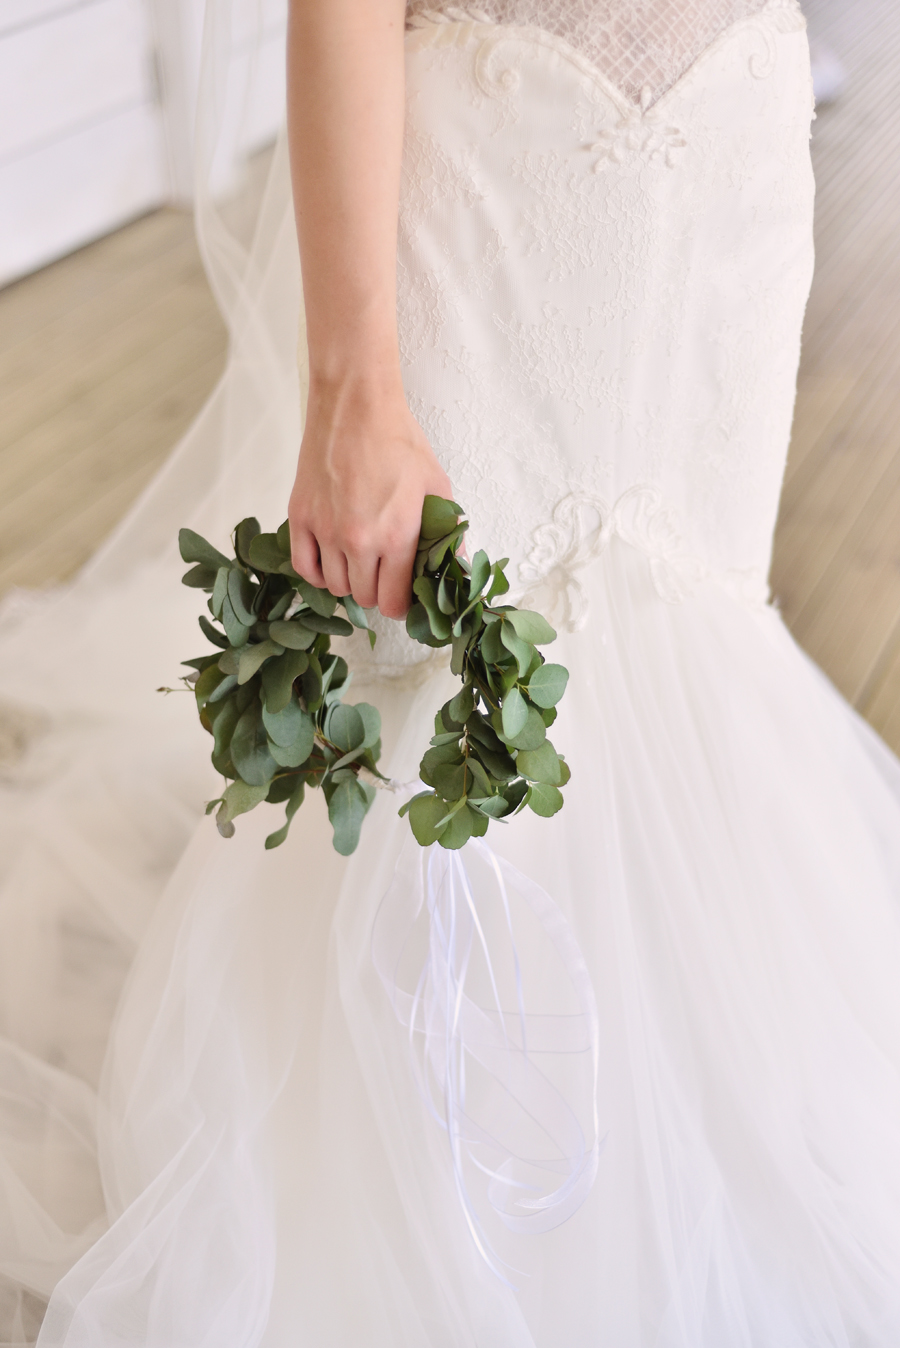 Marina Walker Photography's styled shoot with succulents and affordable details for a minimalist boho wedding (4)